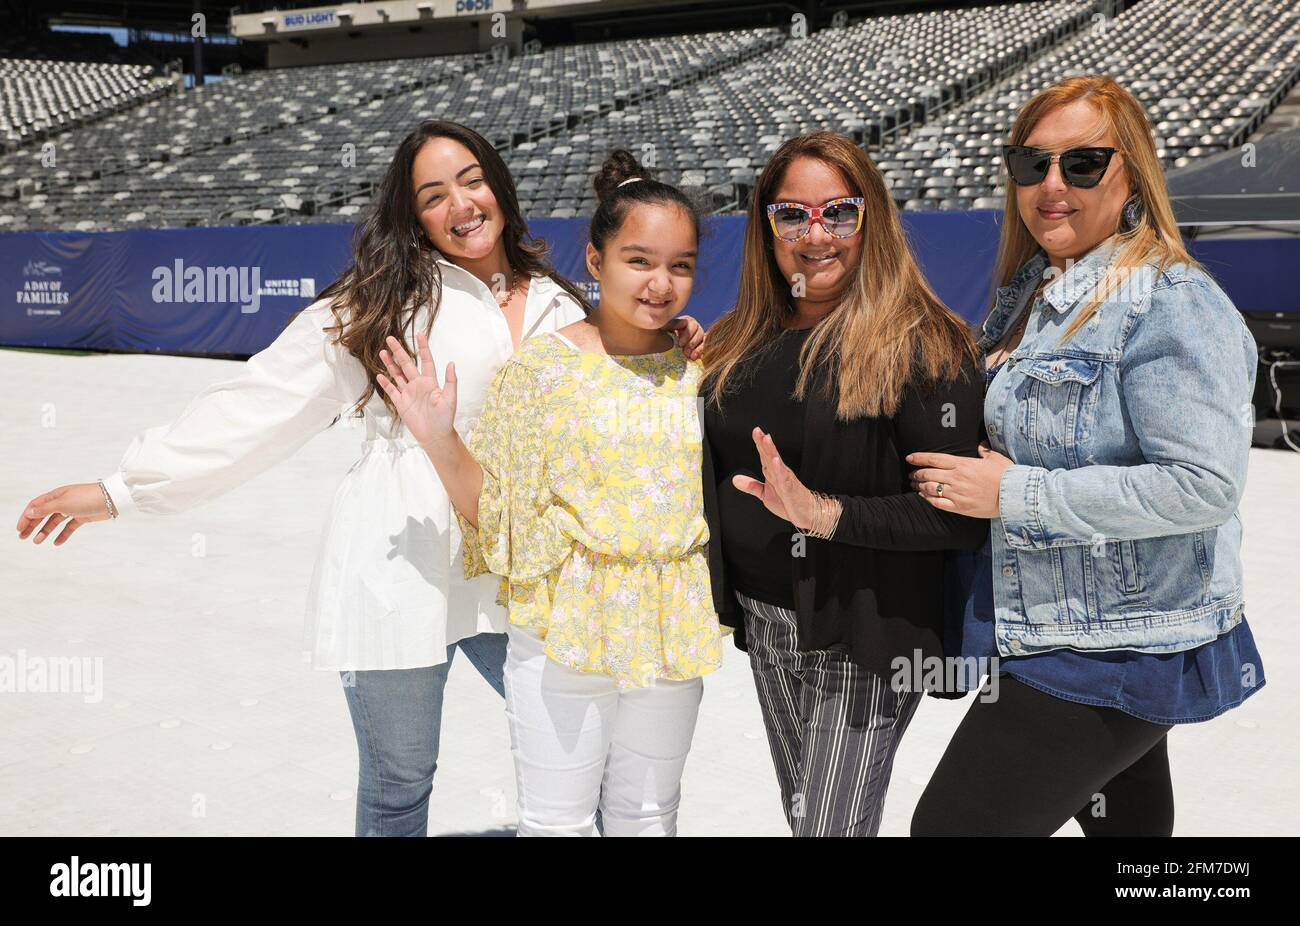 East Rutherford, NJ, USA. 6th May, 2021. Family reunion Photo Call for CLEAR Brings Together Over 100 Family Members Separated During COVID to Reunite for the First Time, MetLife Stadium, East Rutherford, NJ May 6, 2021. Credit: CJ Rivera/Everett Collection/Alamy Live News Stock Photo